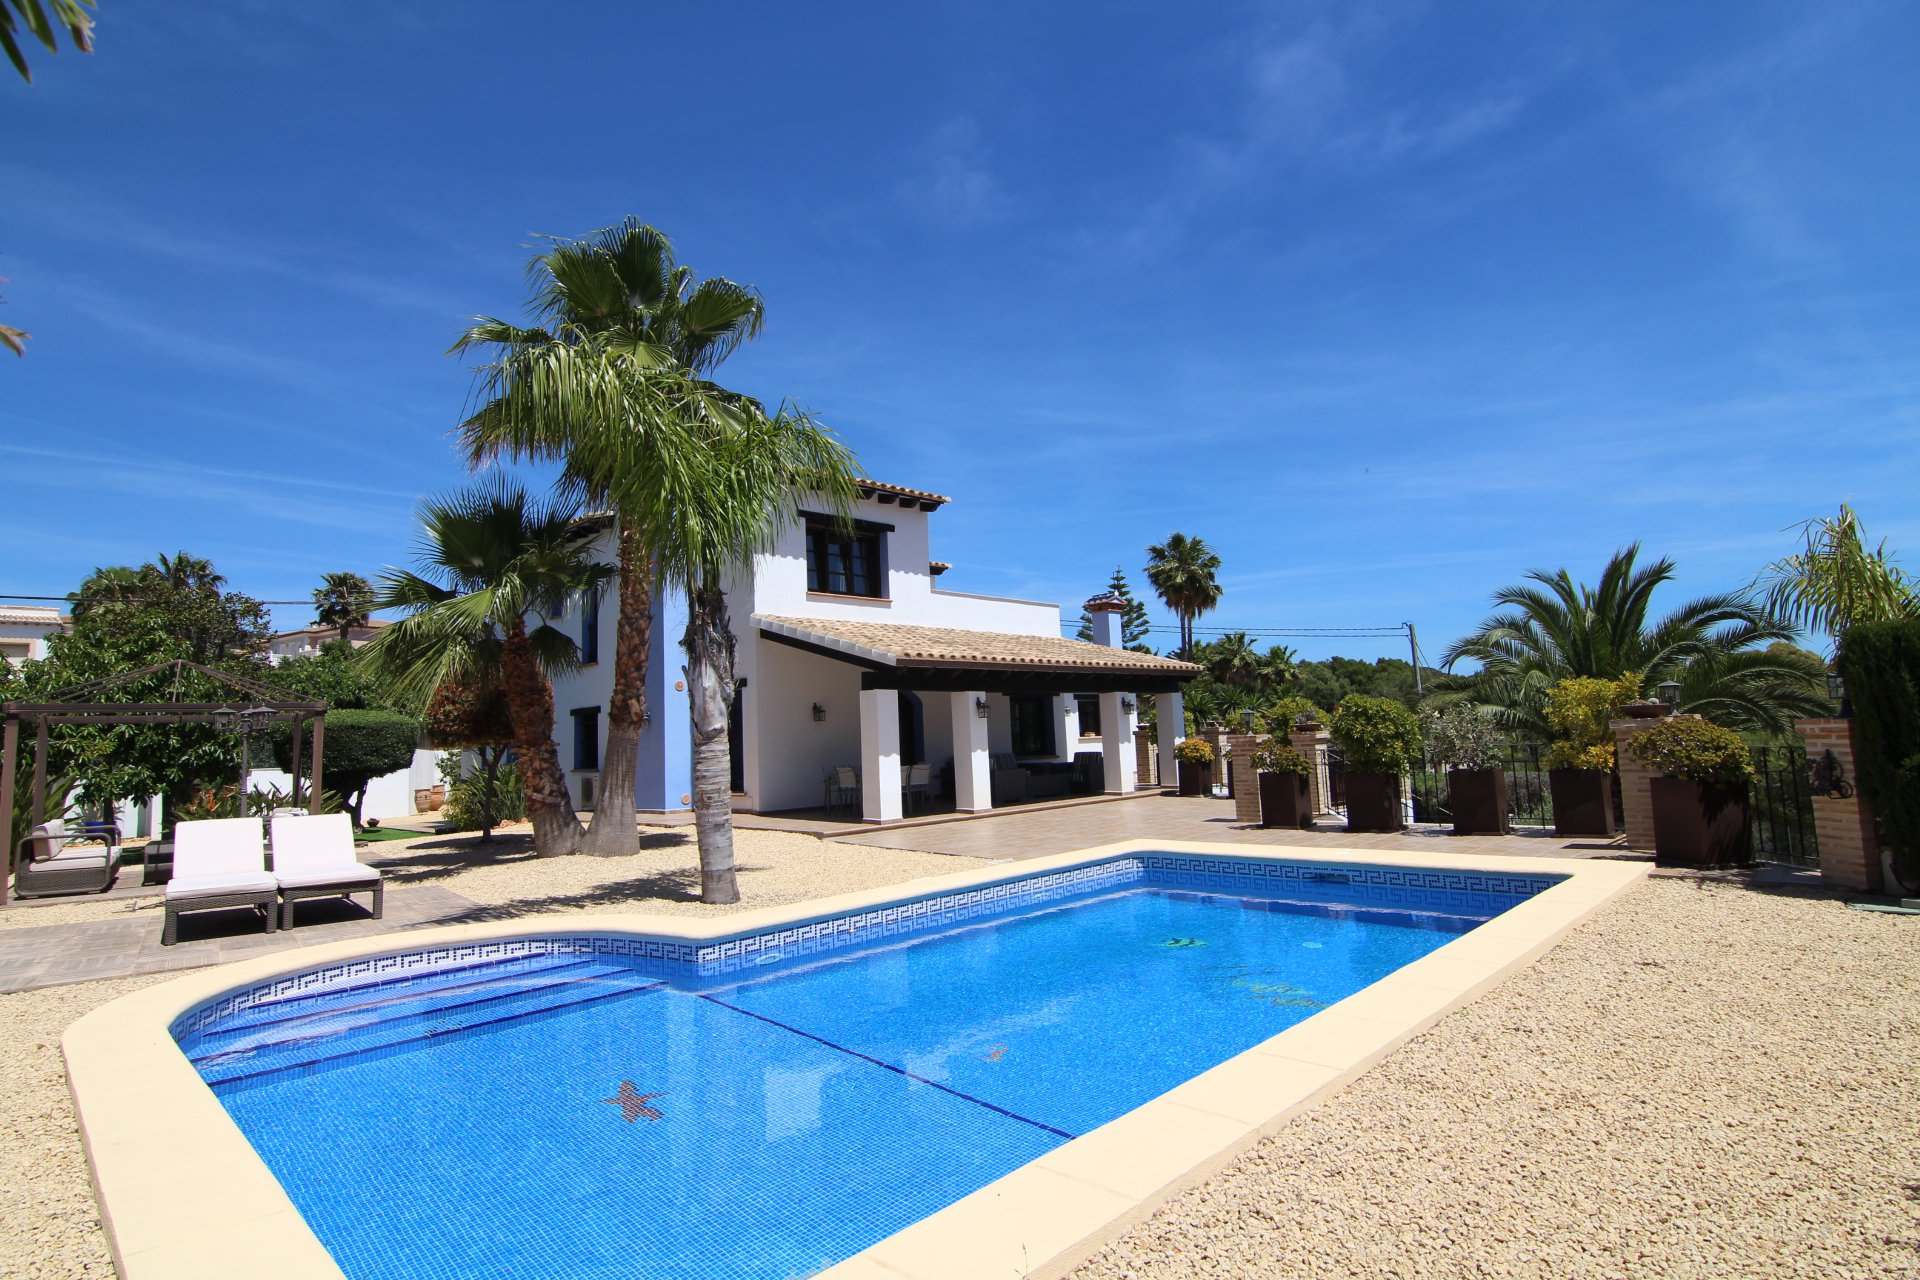 Luxury villa with 5 bedrooms in quiet and green area